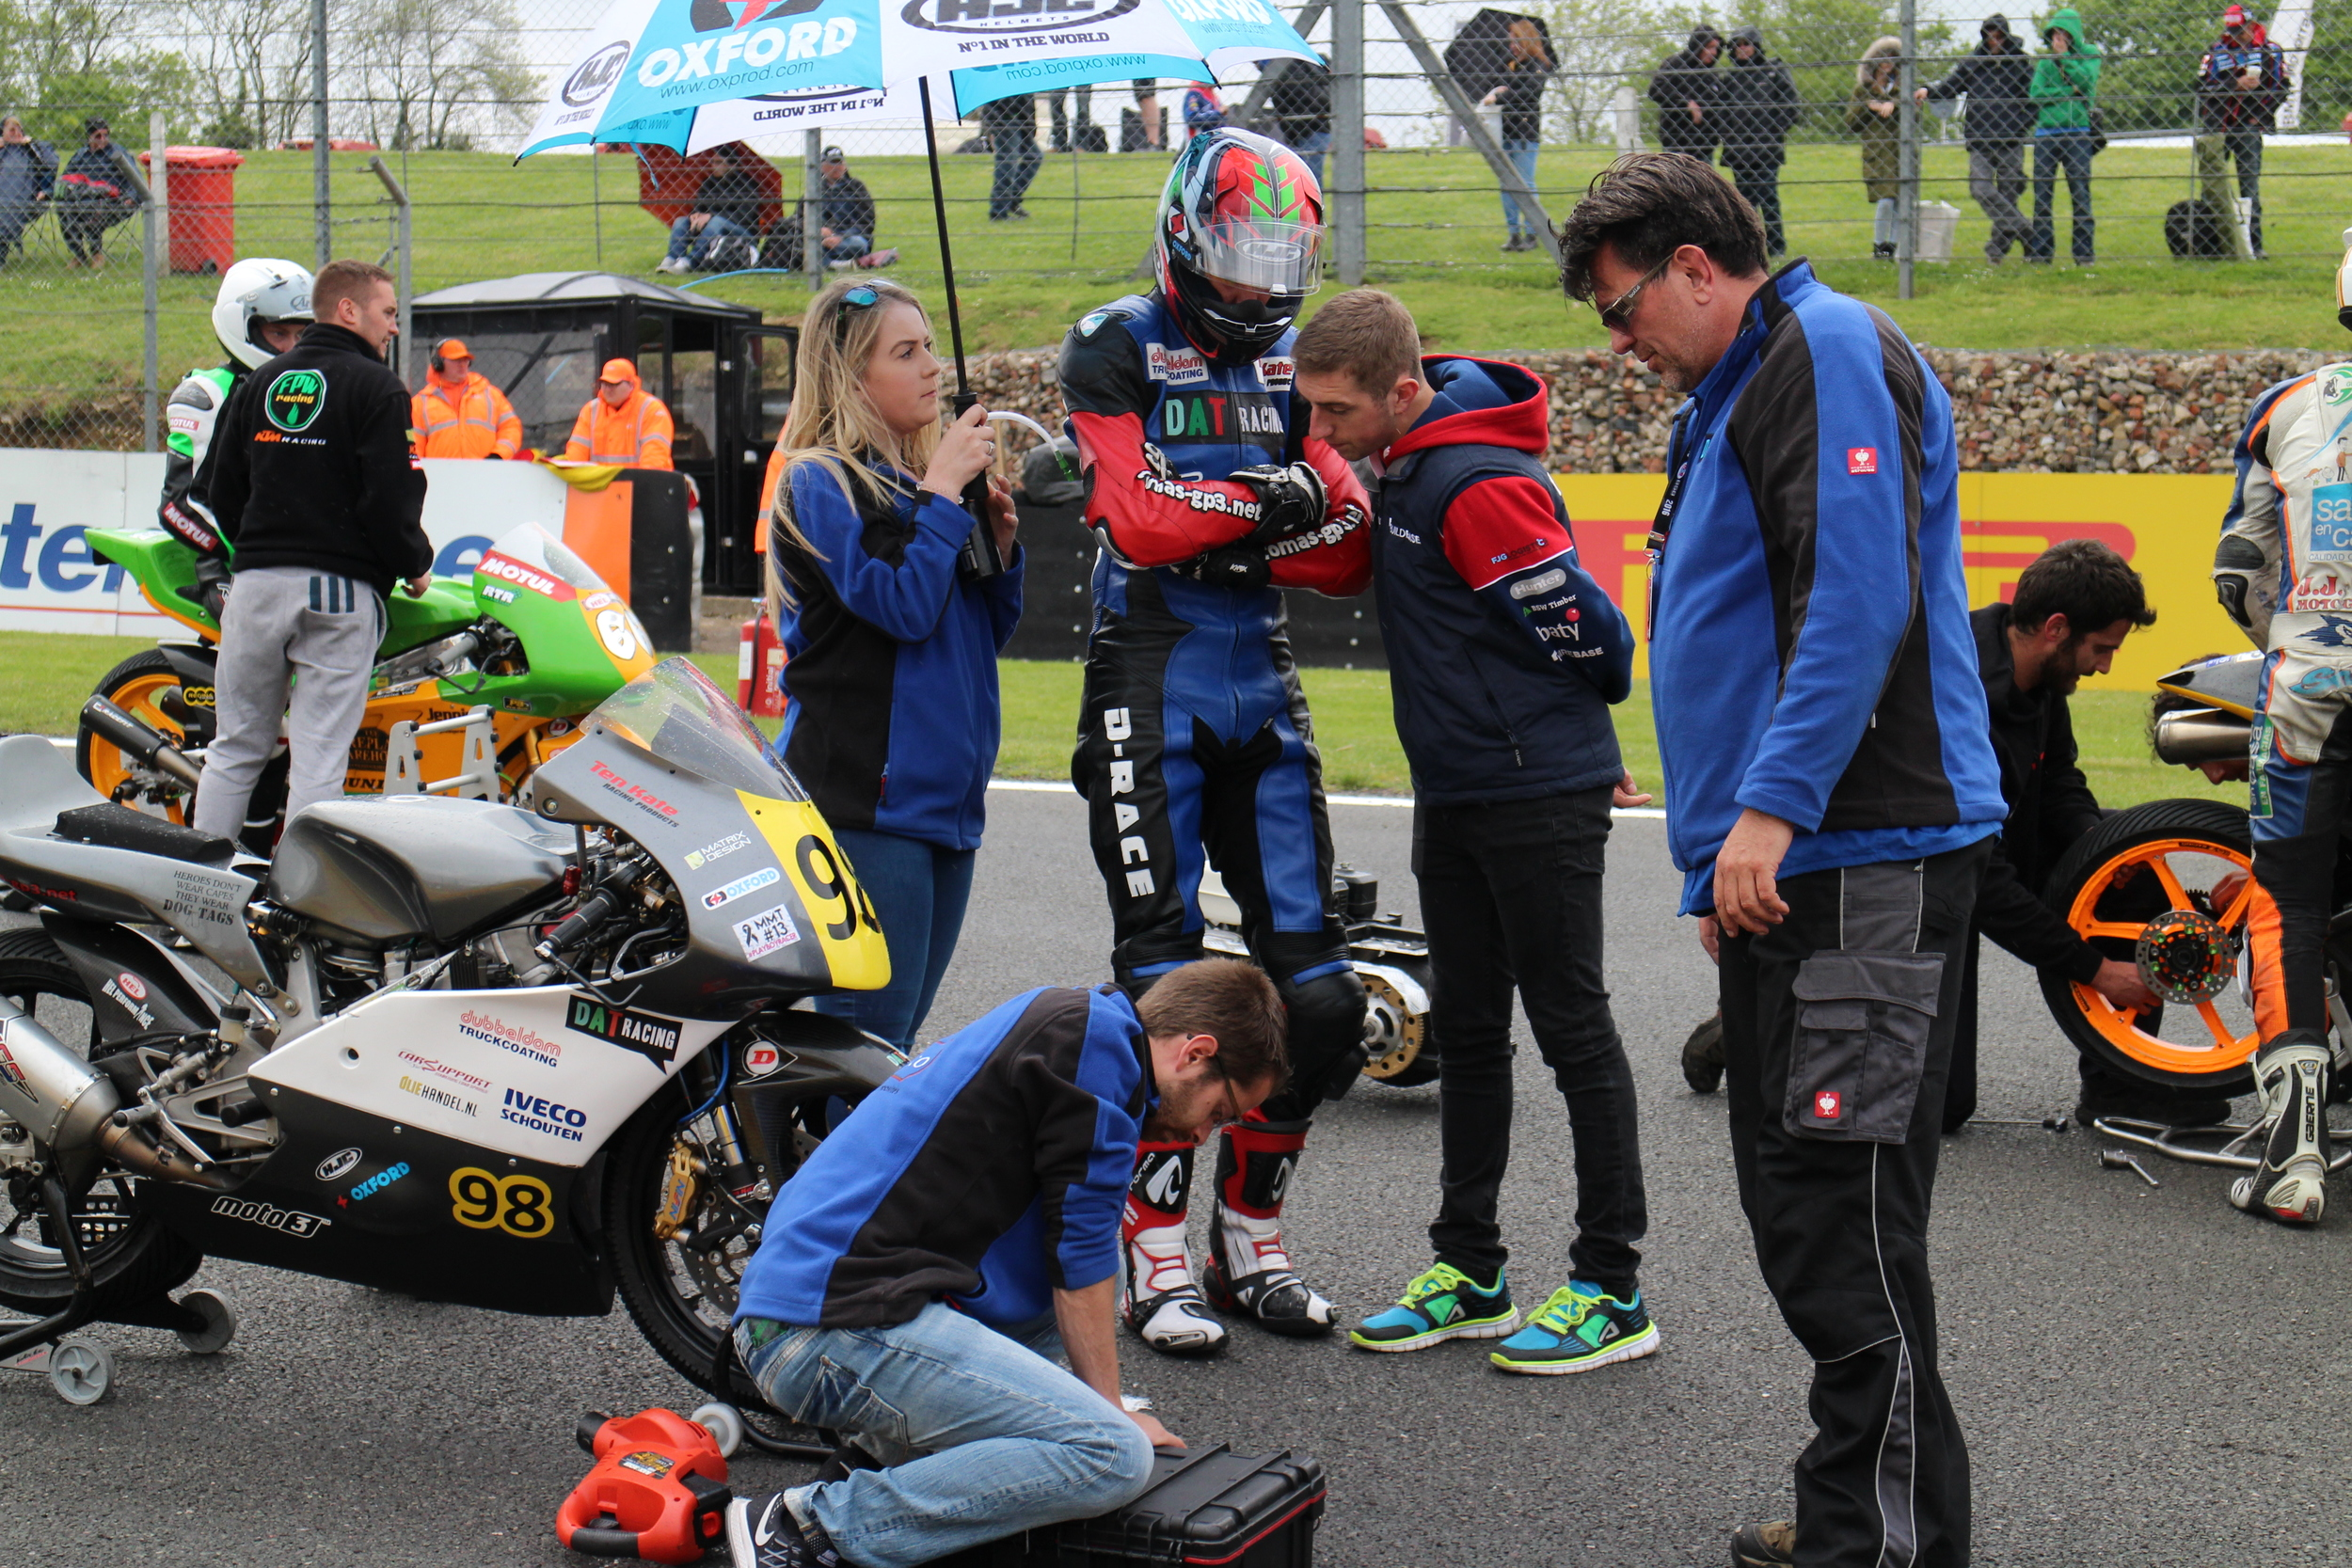 Pre-race tips from British Superbike rider Lee Jackson!